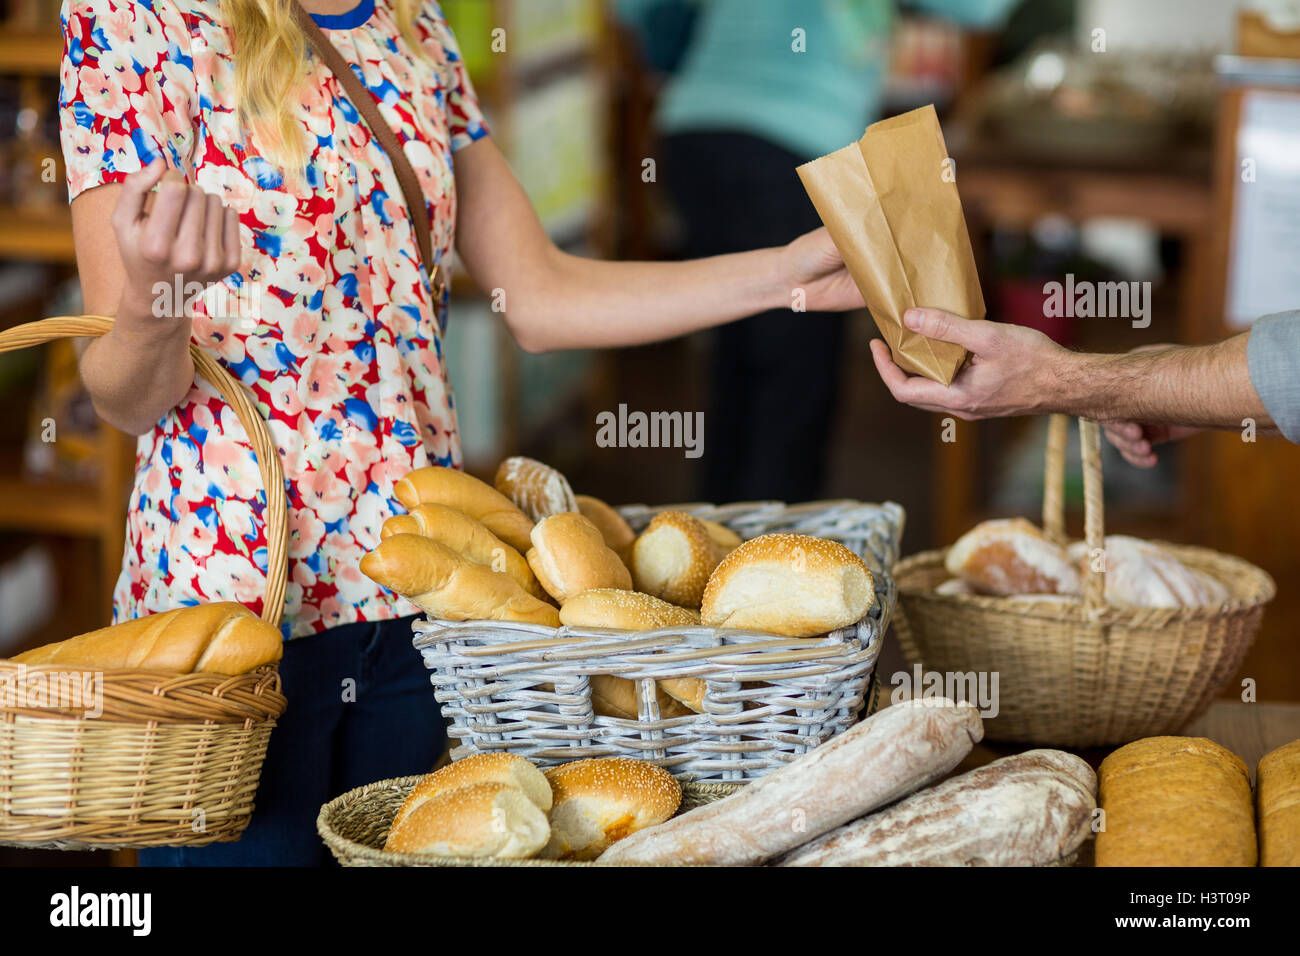 Mid section of woman purchasing bread - Stock Image